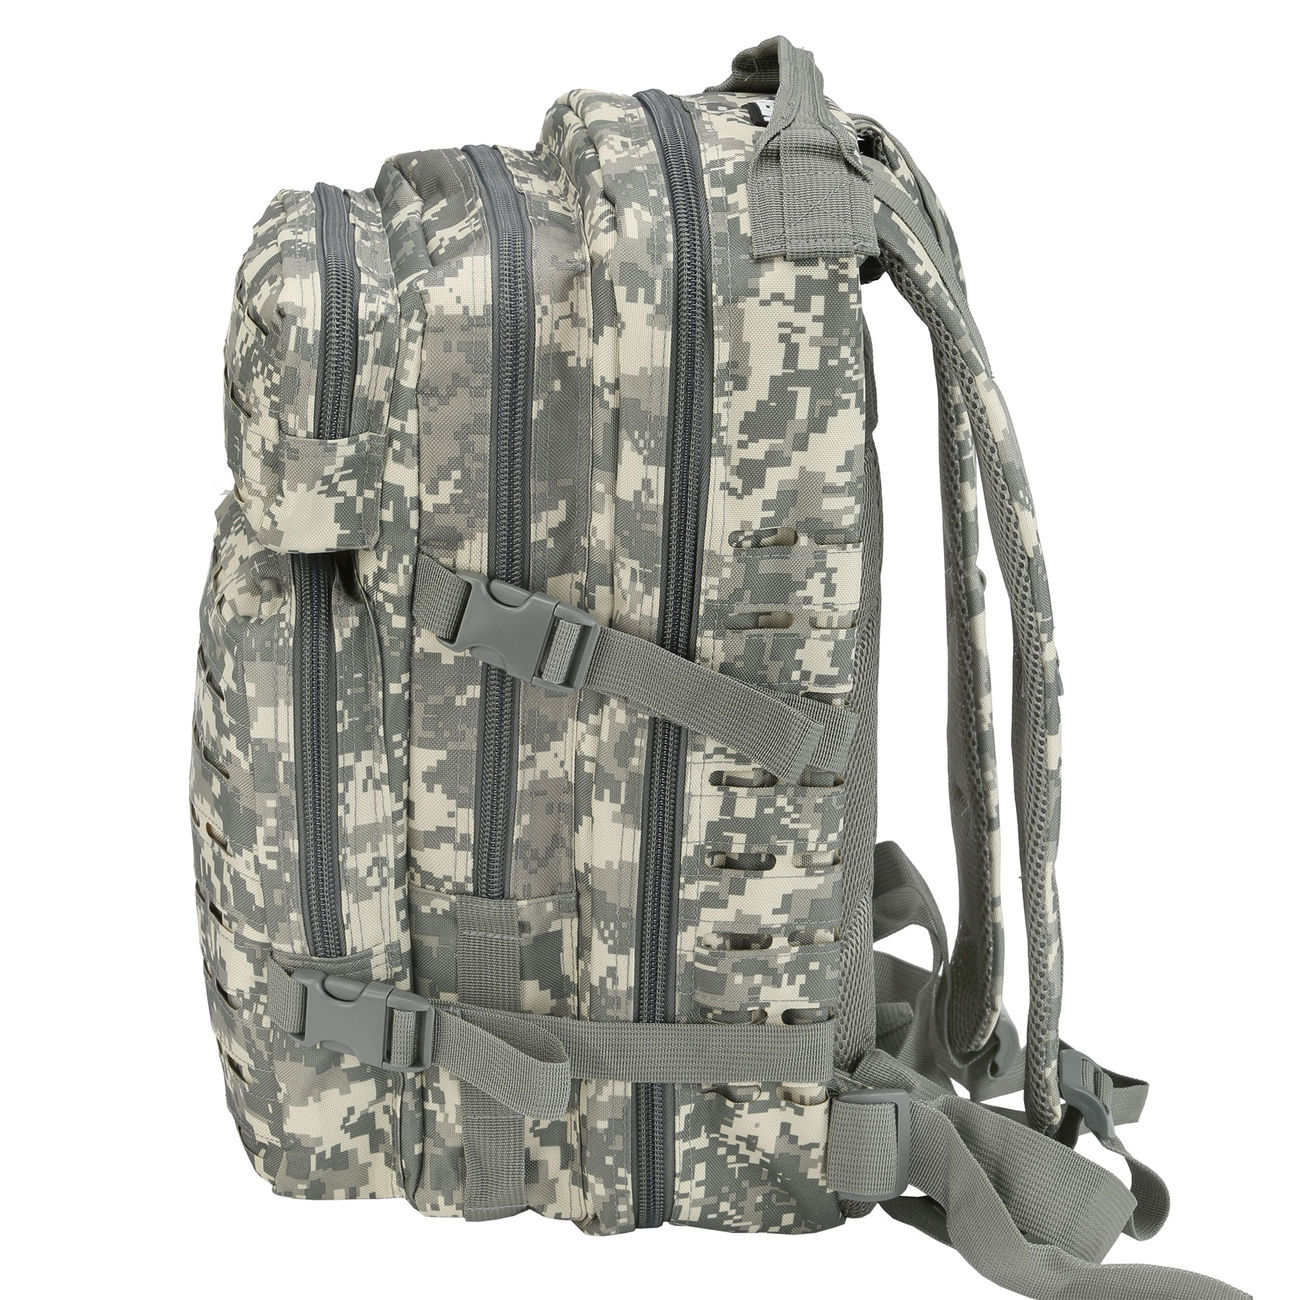 MFH Rucksack US Assault I Laser 30L AT-digital 2